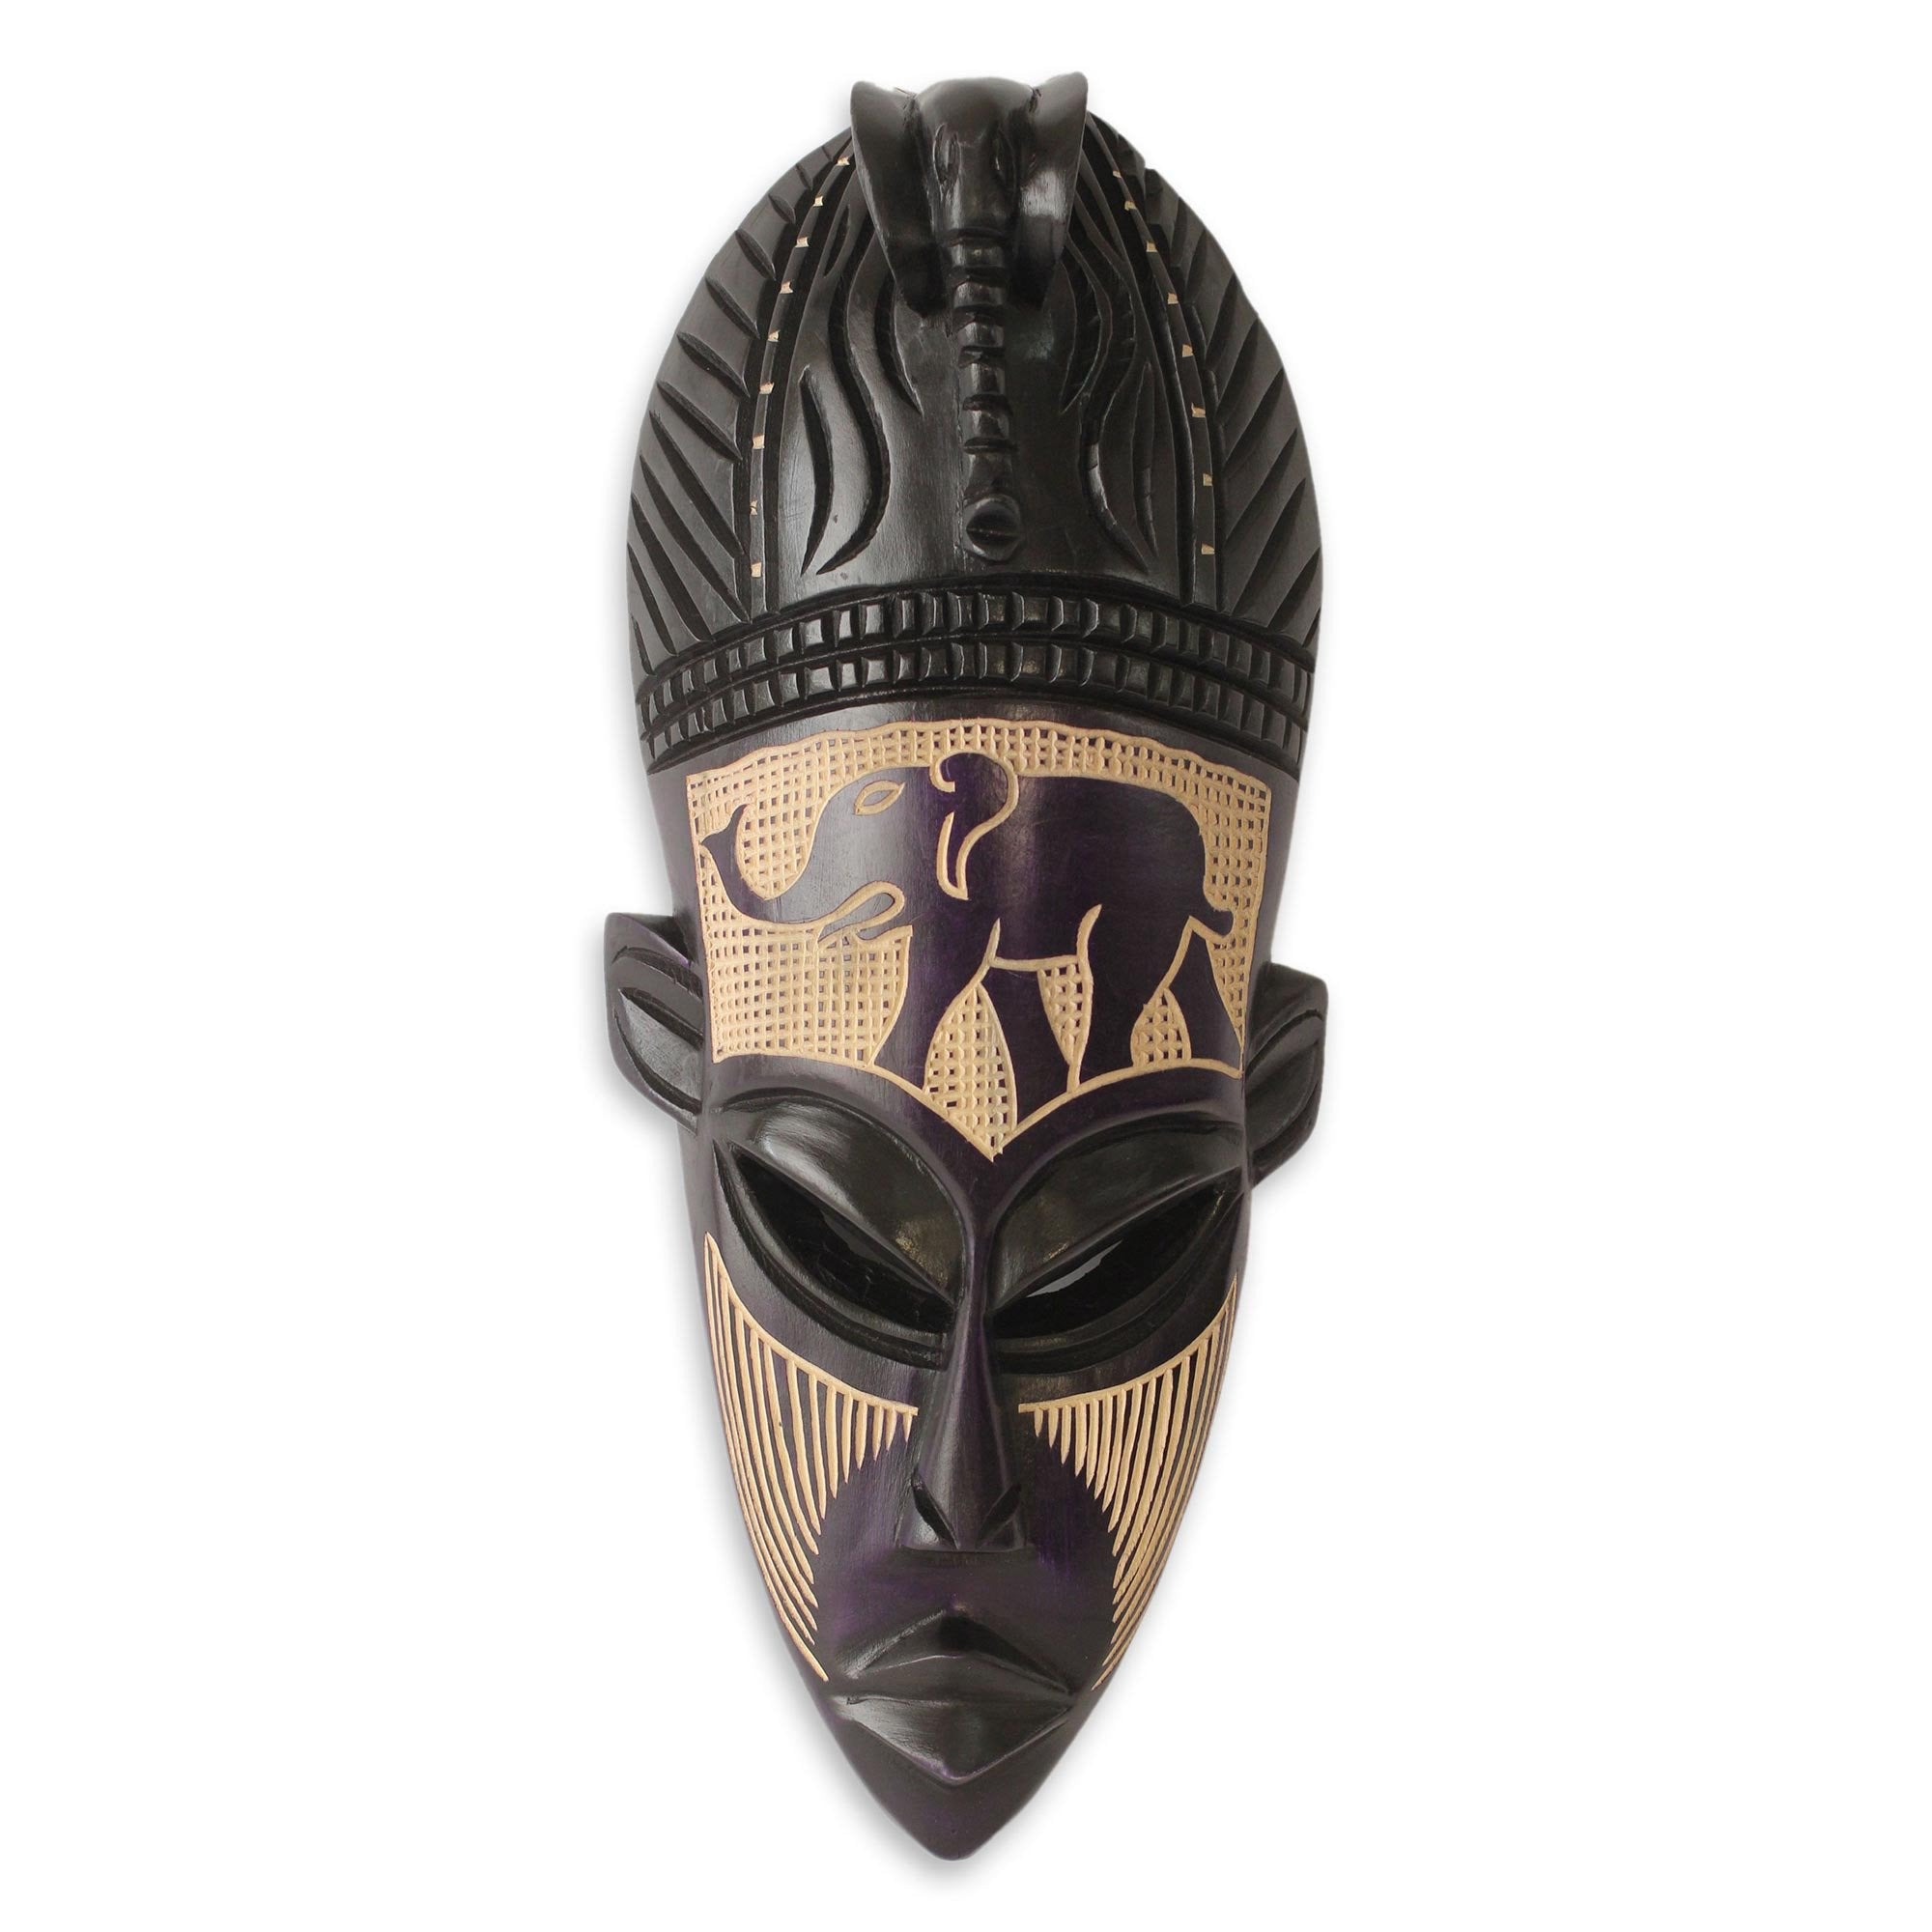 Authentic West African Elephant Spirit Mask by Theophilus Sackey (Ghana)